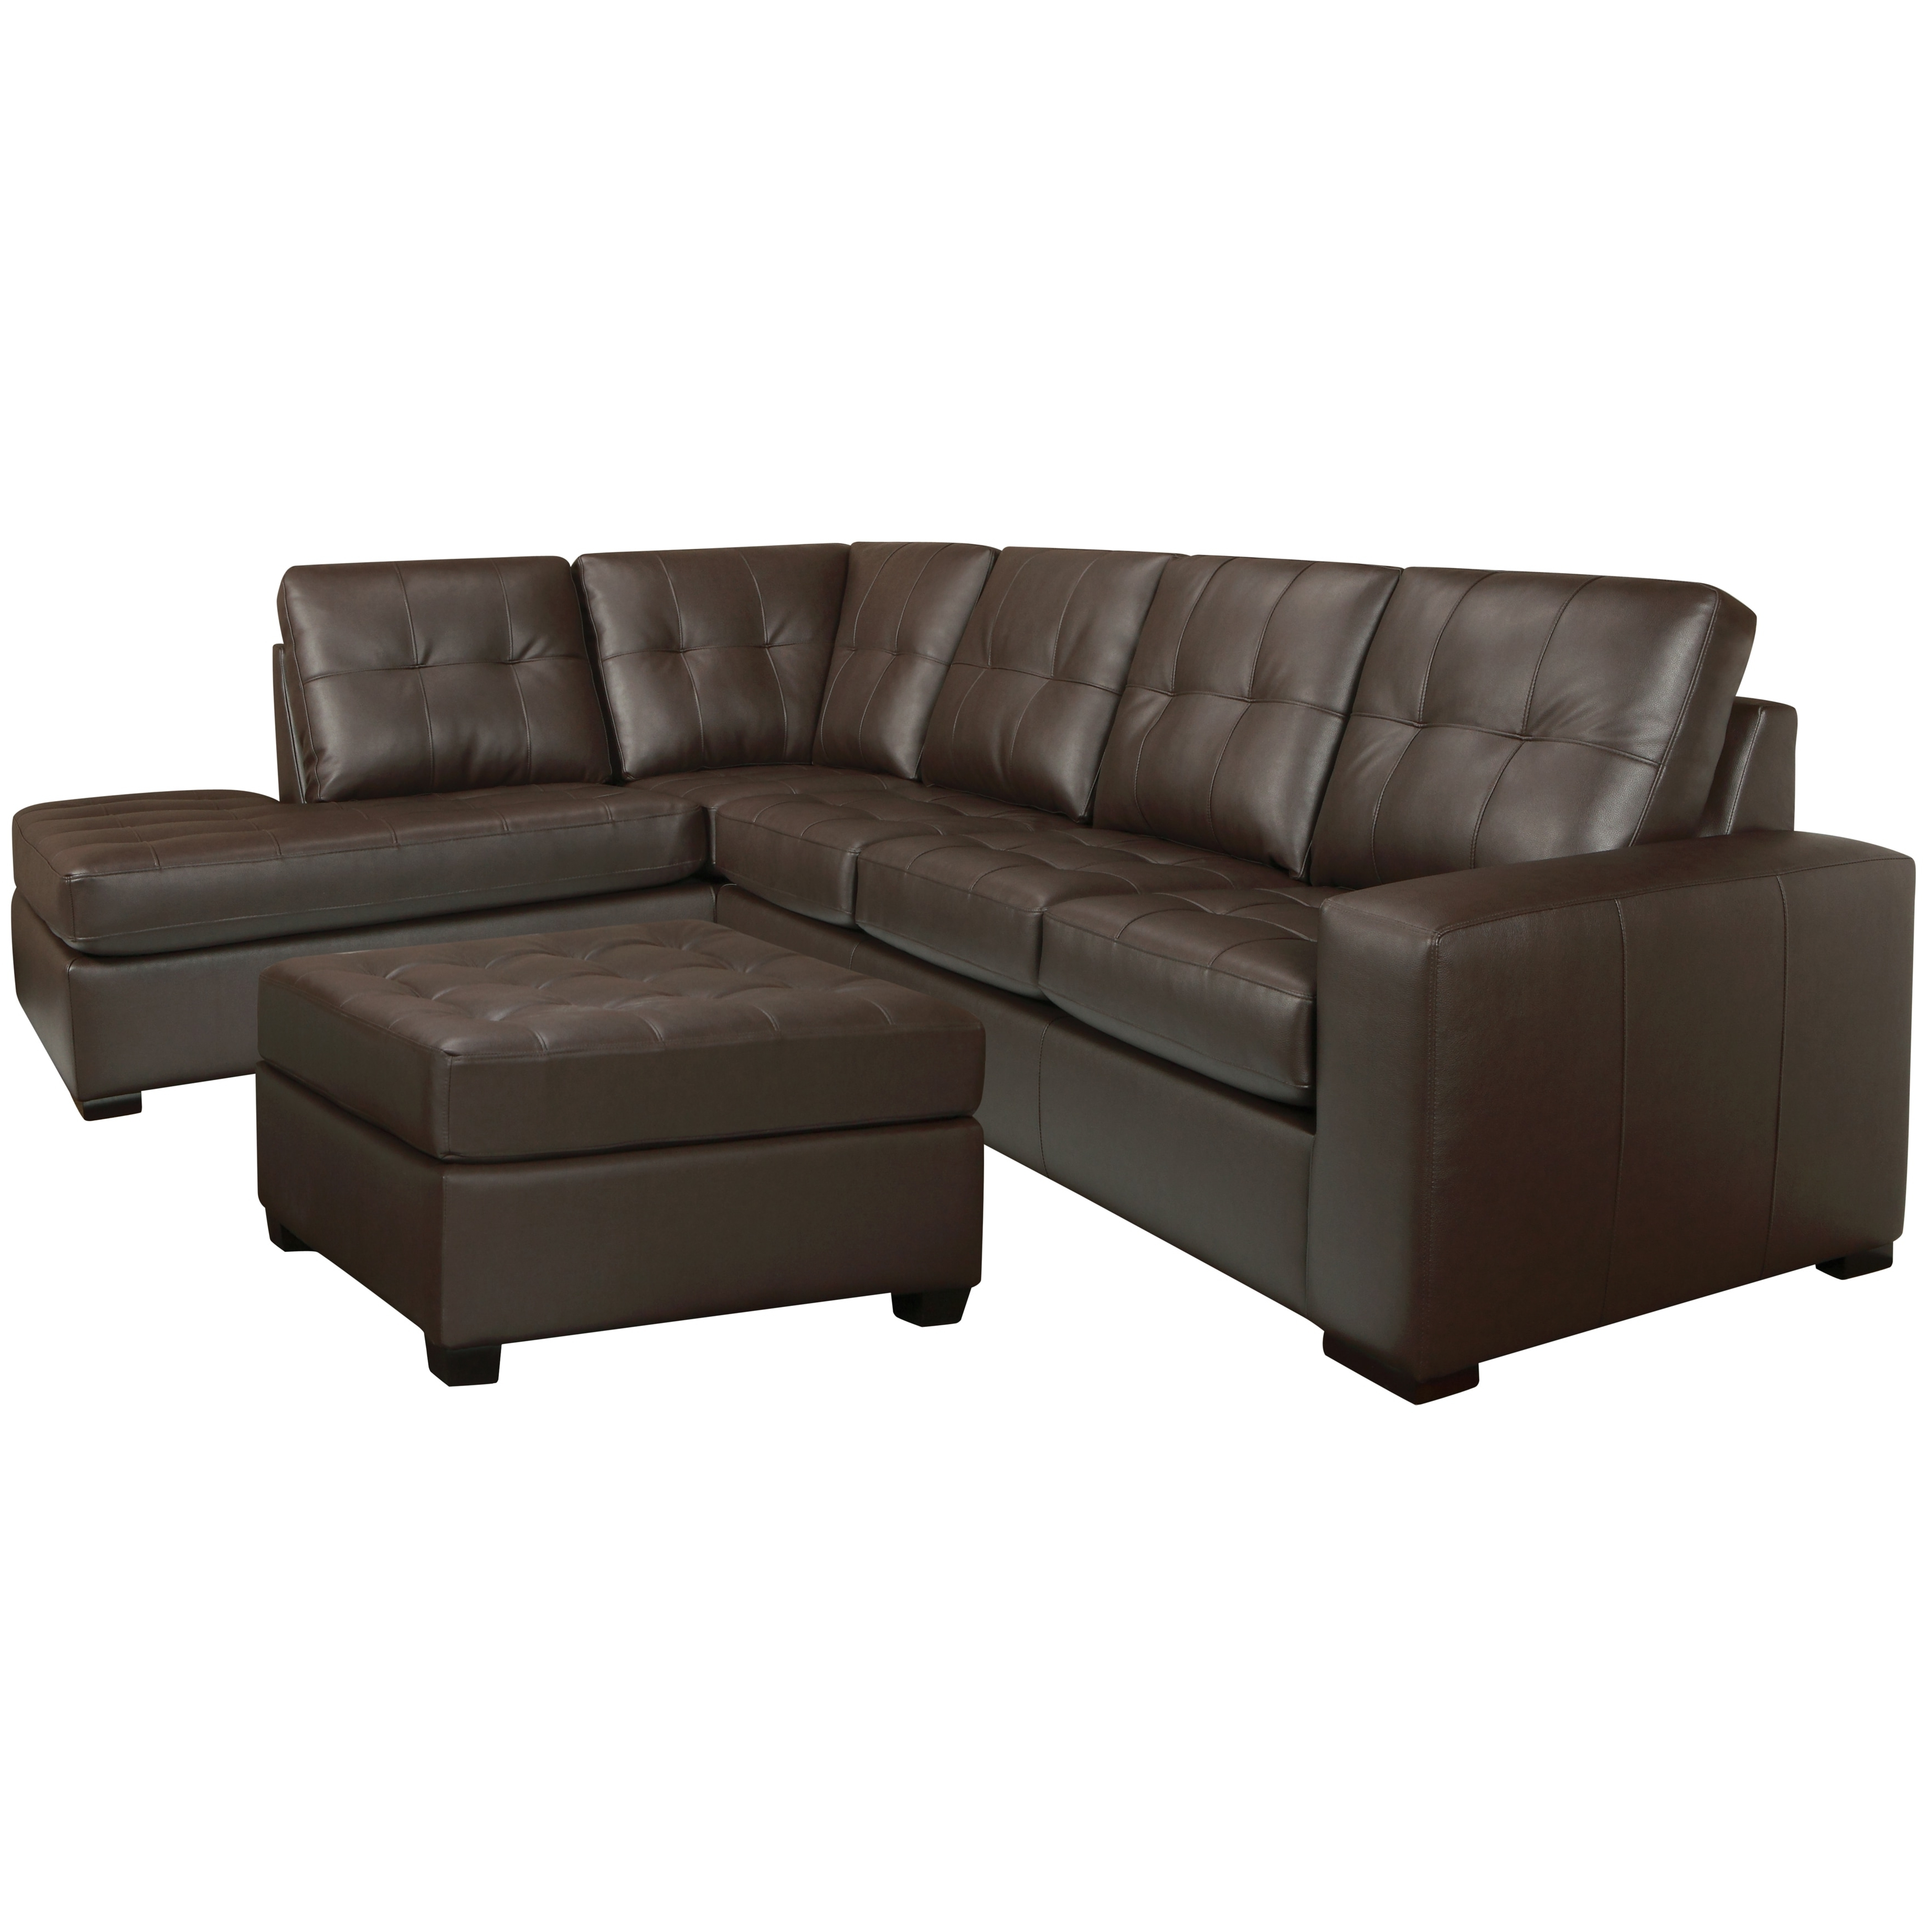 Chocolate Brown Sectional Sofas Inside Favorite Drake Chocolate Brown Italian Leather Sectional Sofa And Ottoman (View 15 of 20)